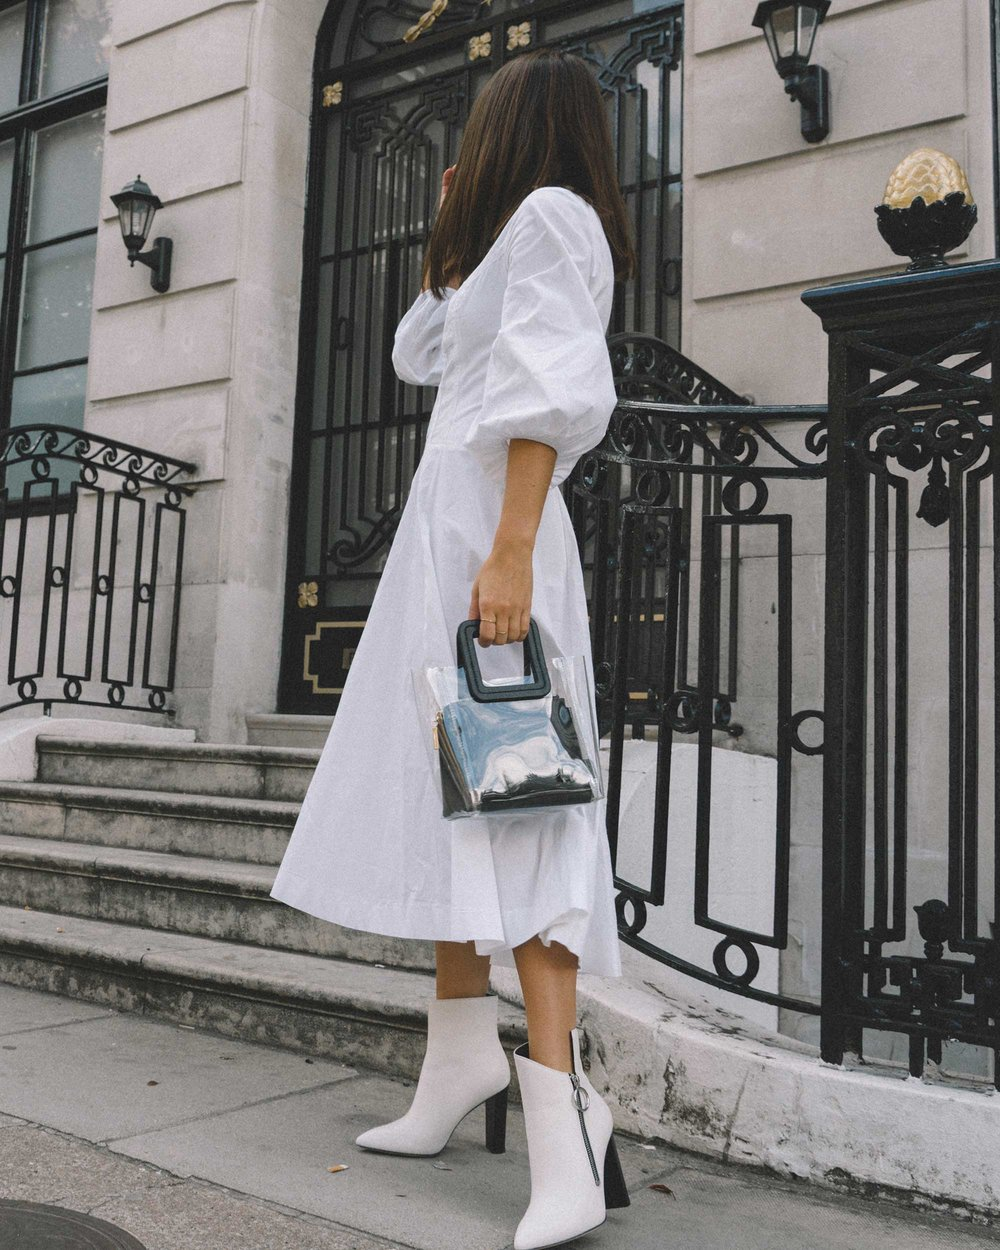 STAUD Eden Midi Dress, STAUD clear and black shirley mini PVC and leather tote, London Fashion Week Outfit11.jpg